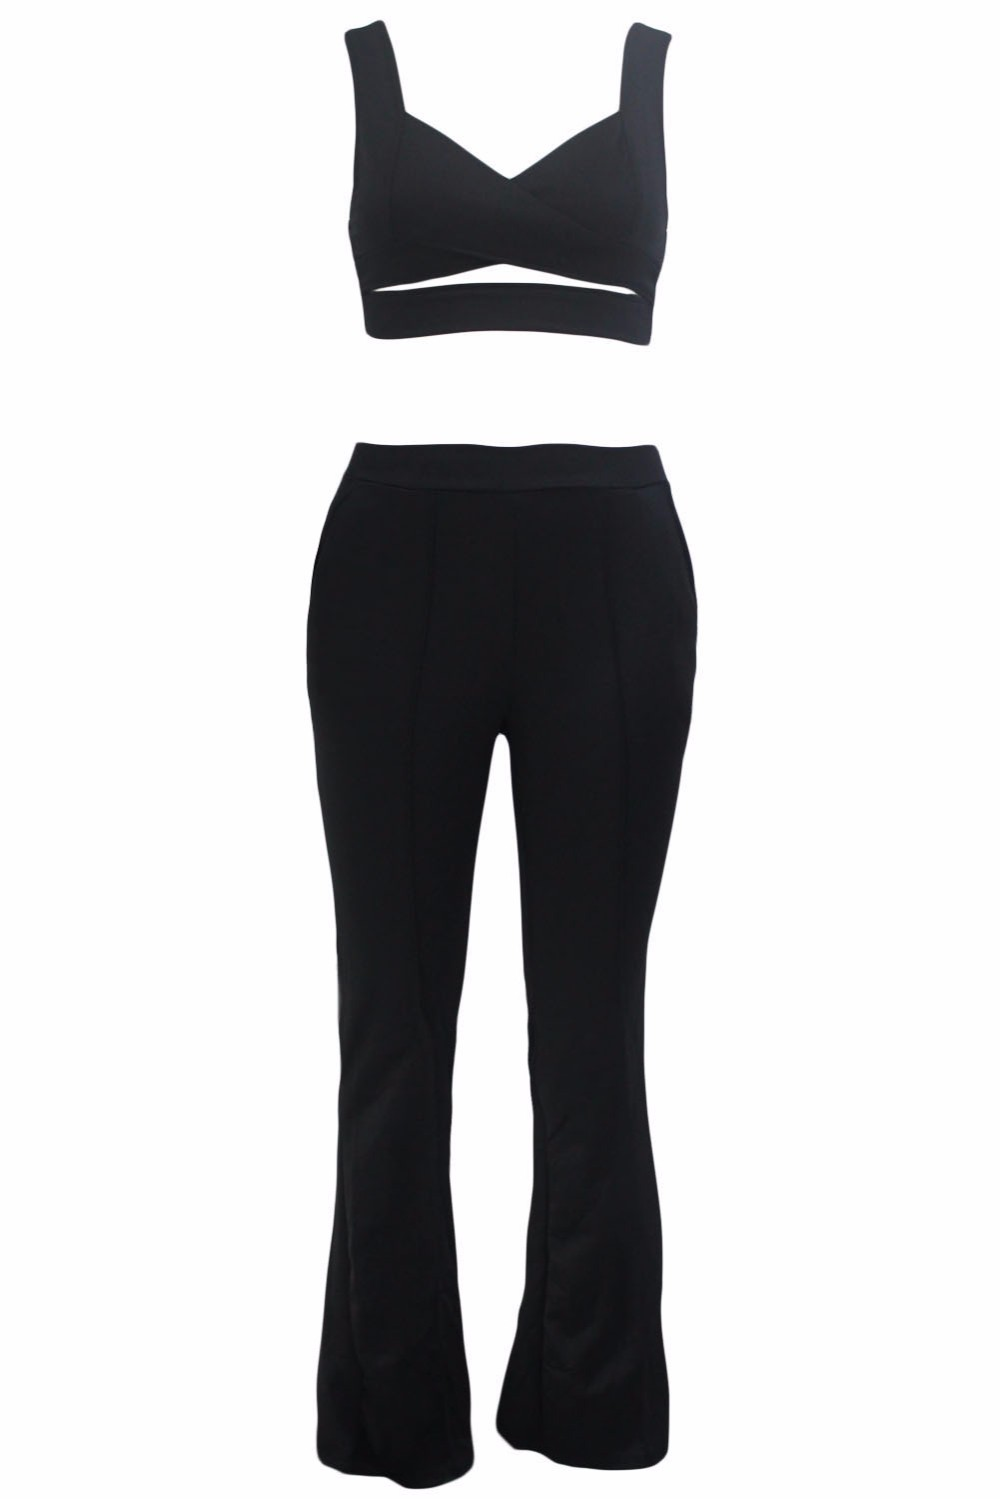 Black-Cross-Front-Crop-Top-and-Pocket-Pant-Set-LC62005-2-42961